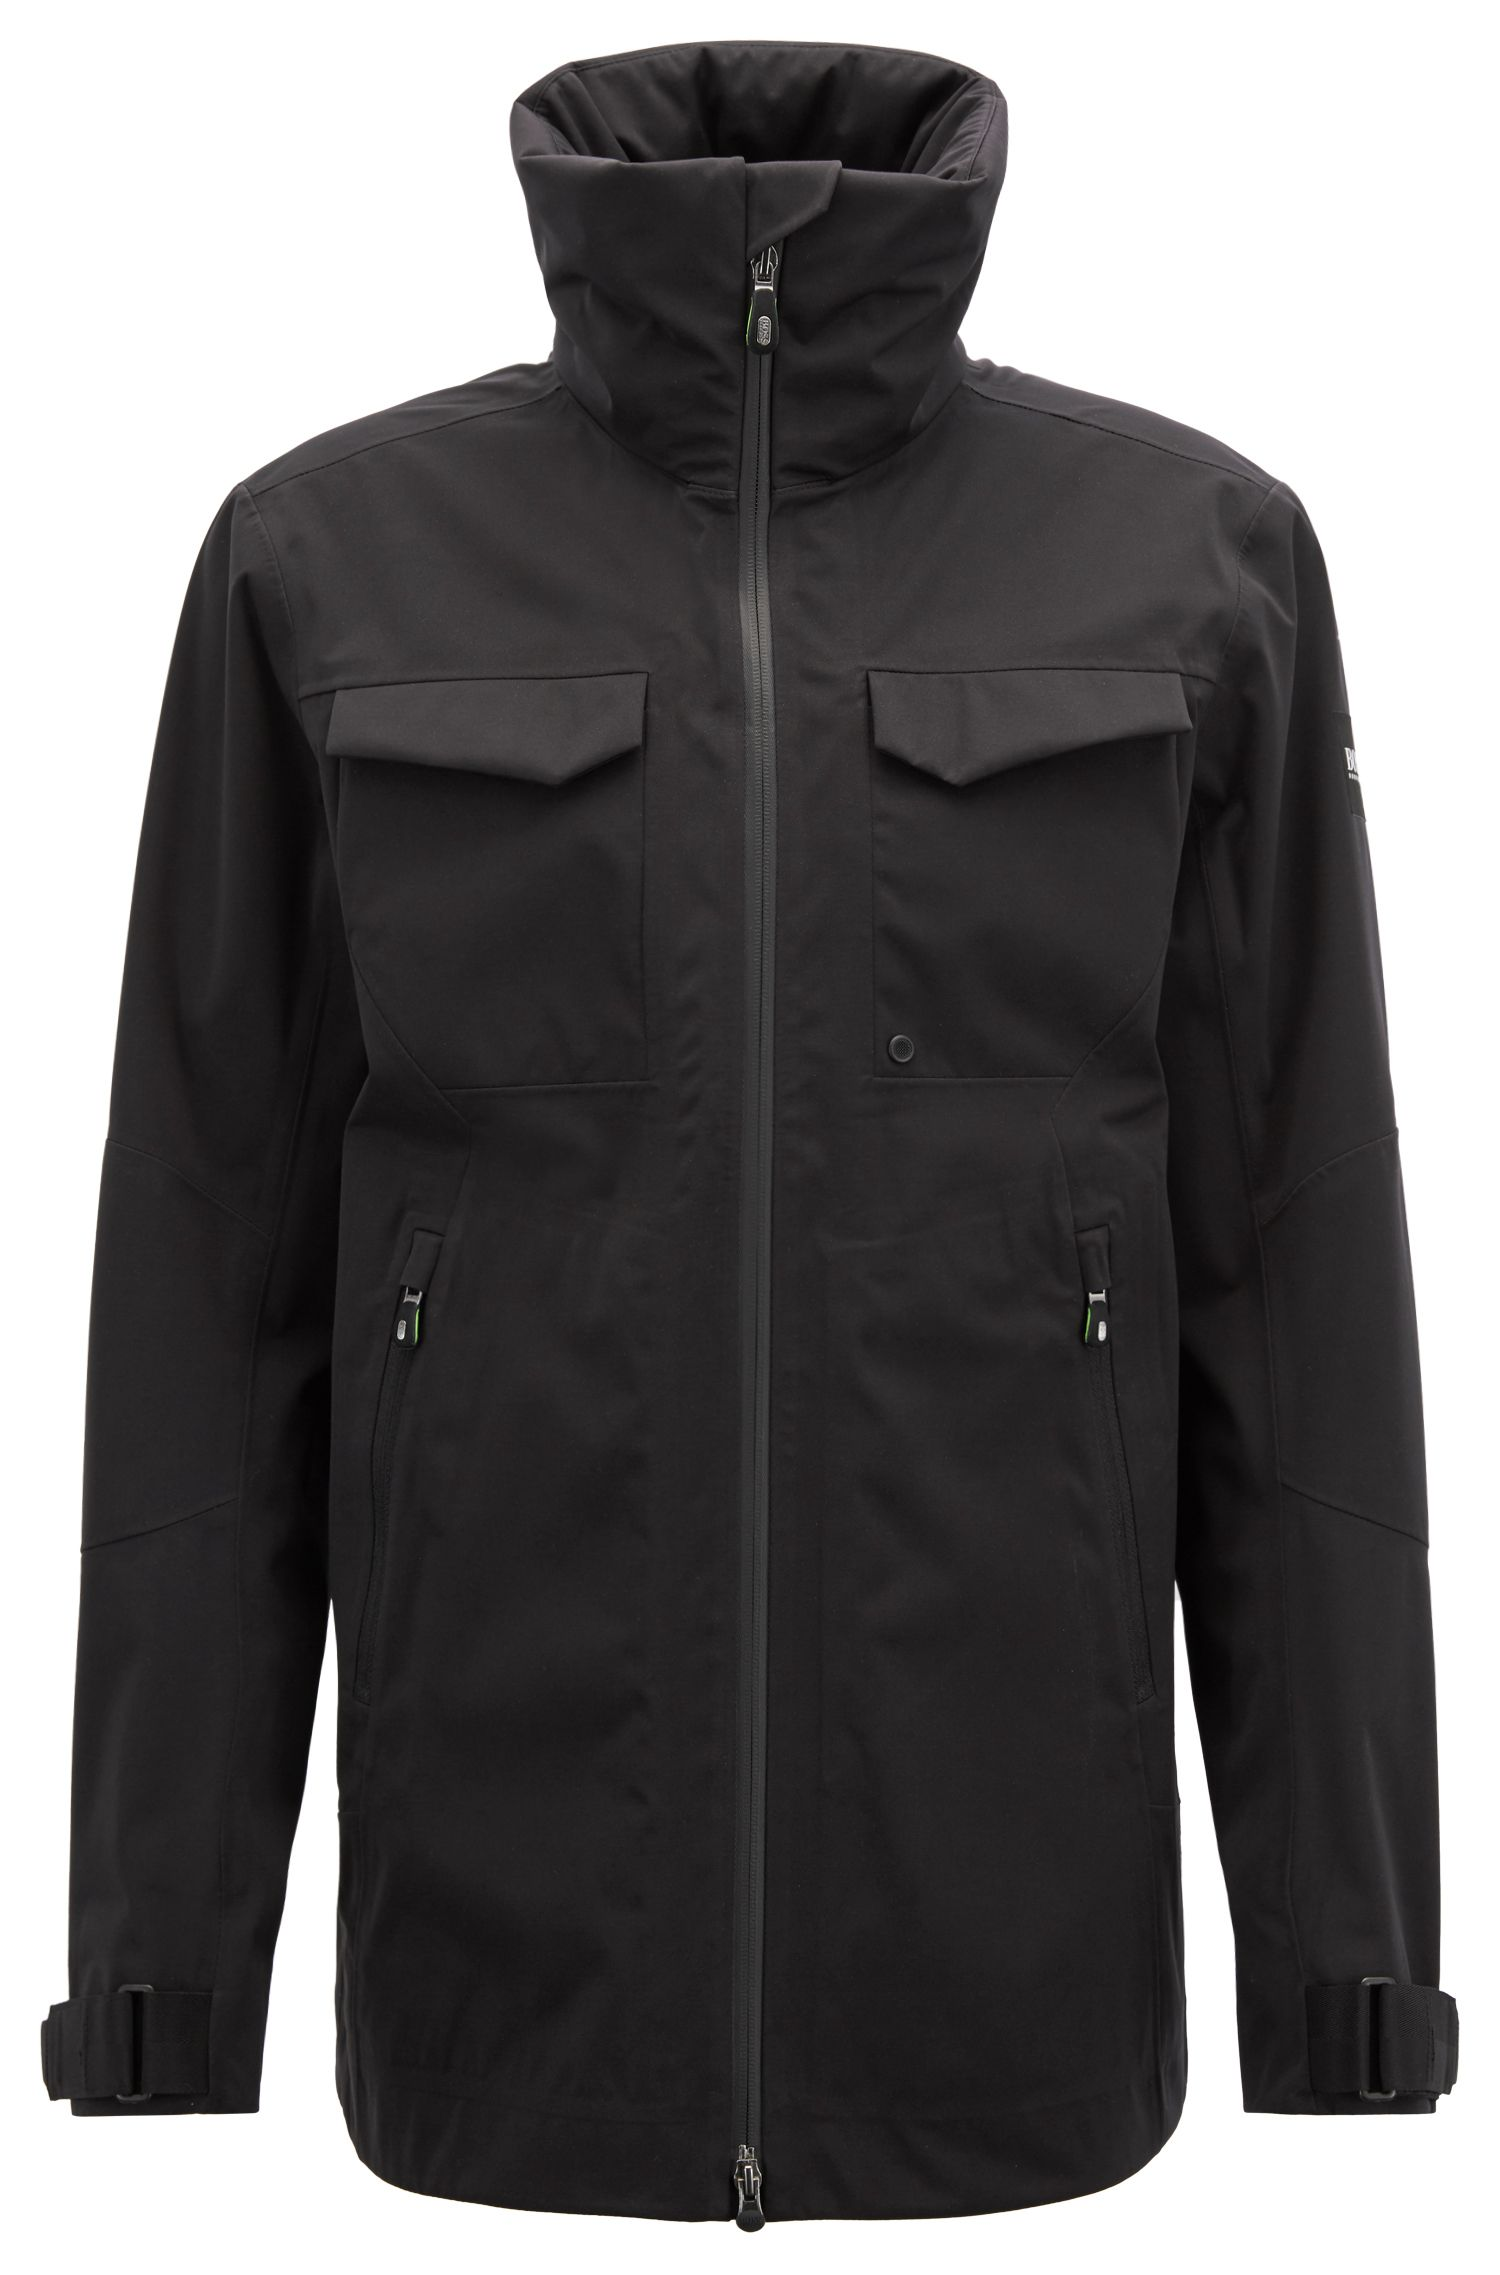 Hugo Boss - Waterproof softshell jacket with stowaway hood - 1